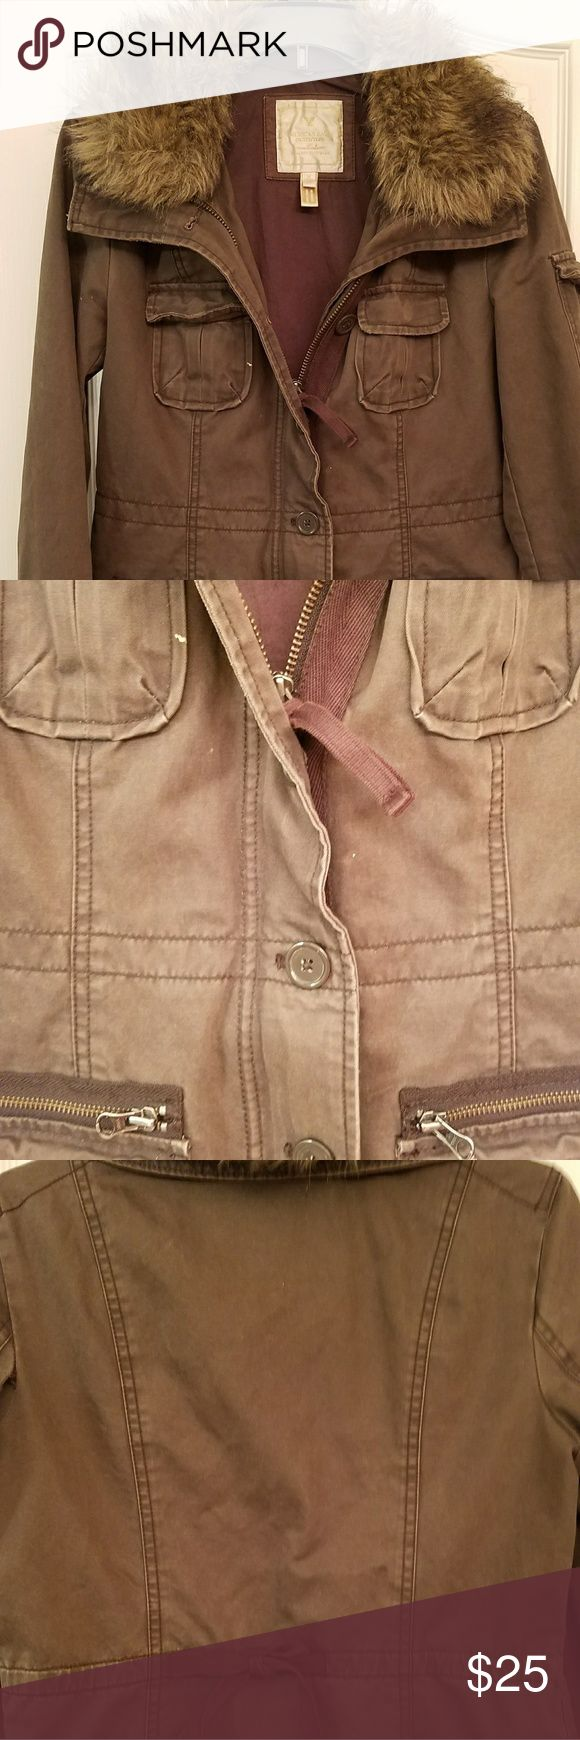 Jacket American Eagle Dark tan  naturally weathered American Eagle jacket/coat. Faux fur collar,  accent tie 2 to gather in the back, 4 front pockets and pockets on the sleeves.  Used very little in the tropics.  Smoke free home,  Make an offer! American Eagle Outfitters Jackets & Coats Utility Jackets